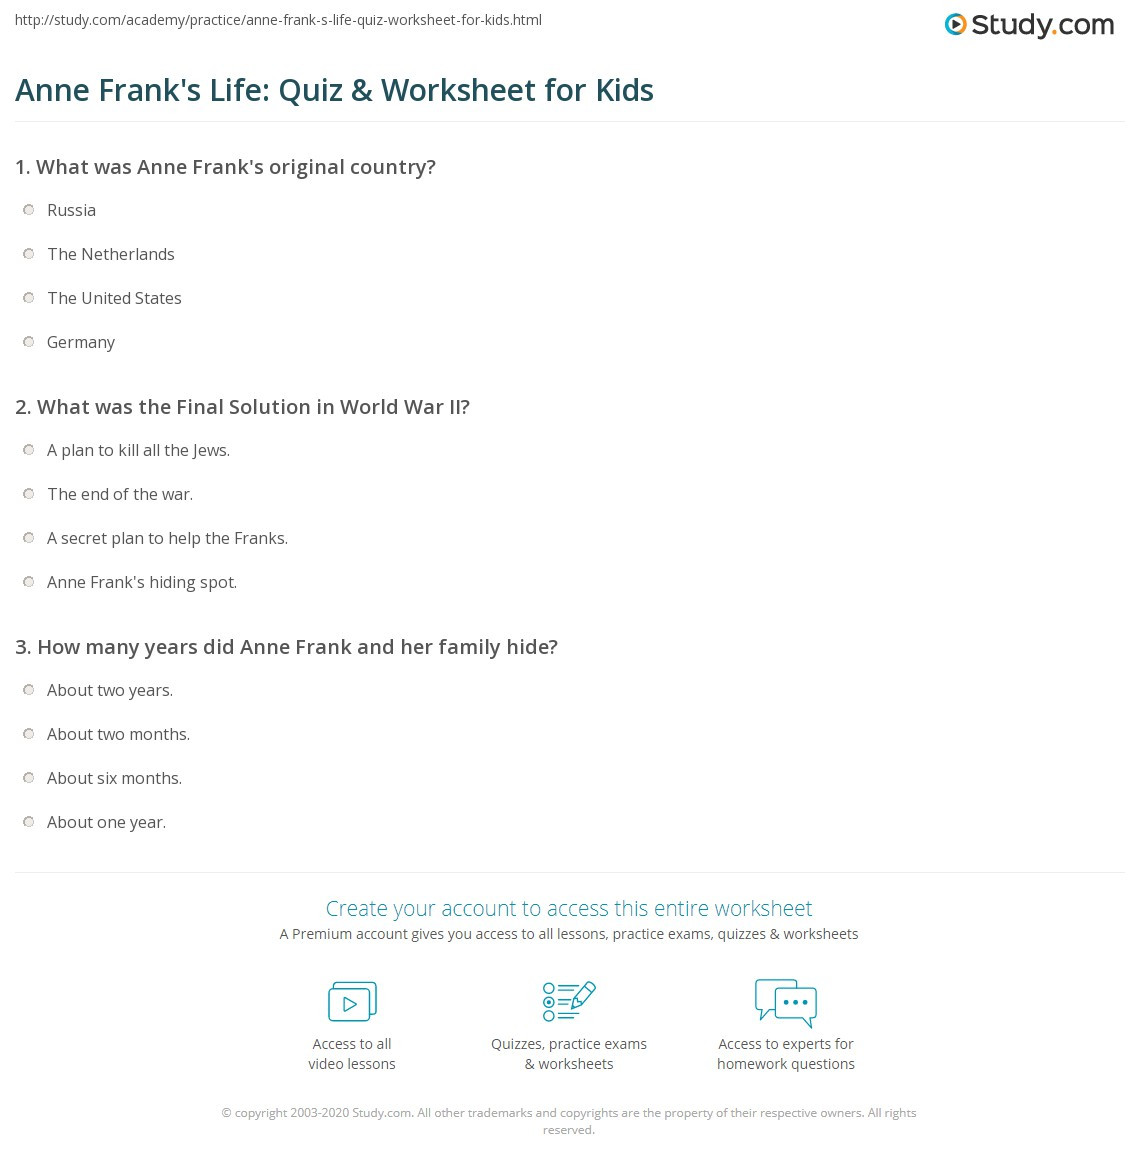 Anne Frank Worksheets Middle School Anne Frank S Life Quiz & Worksheet for Kids